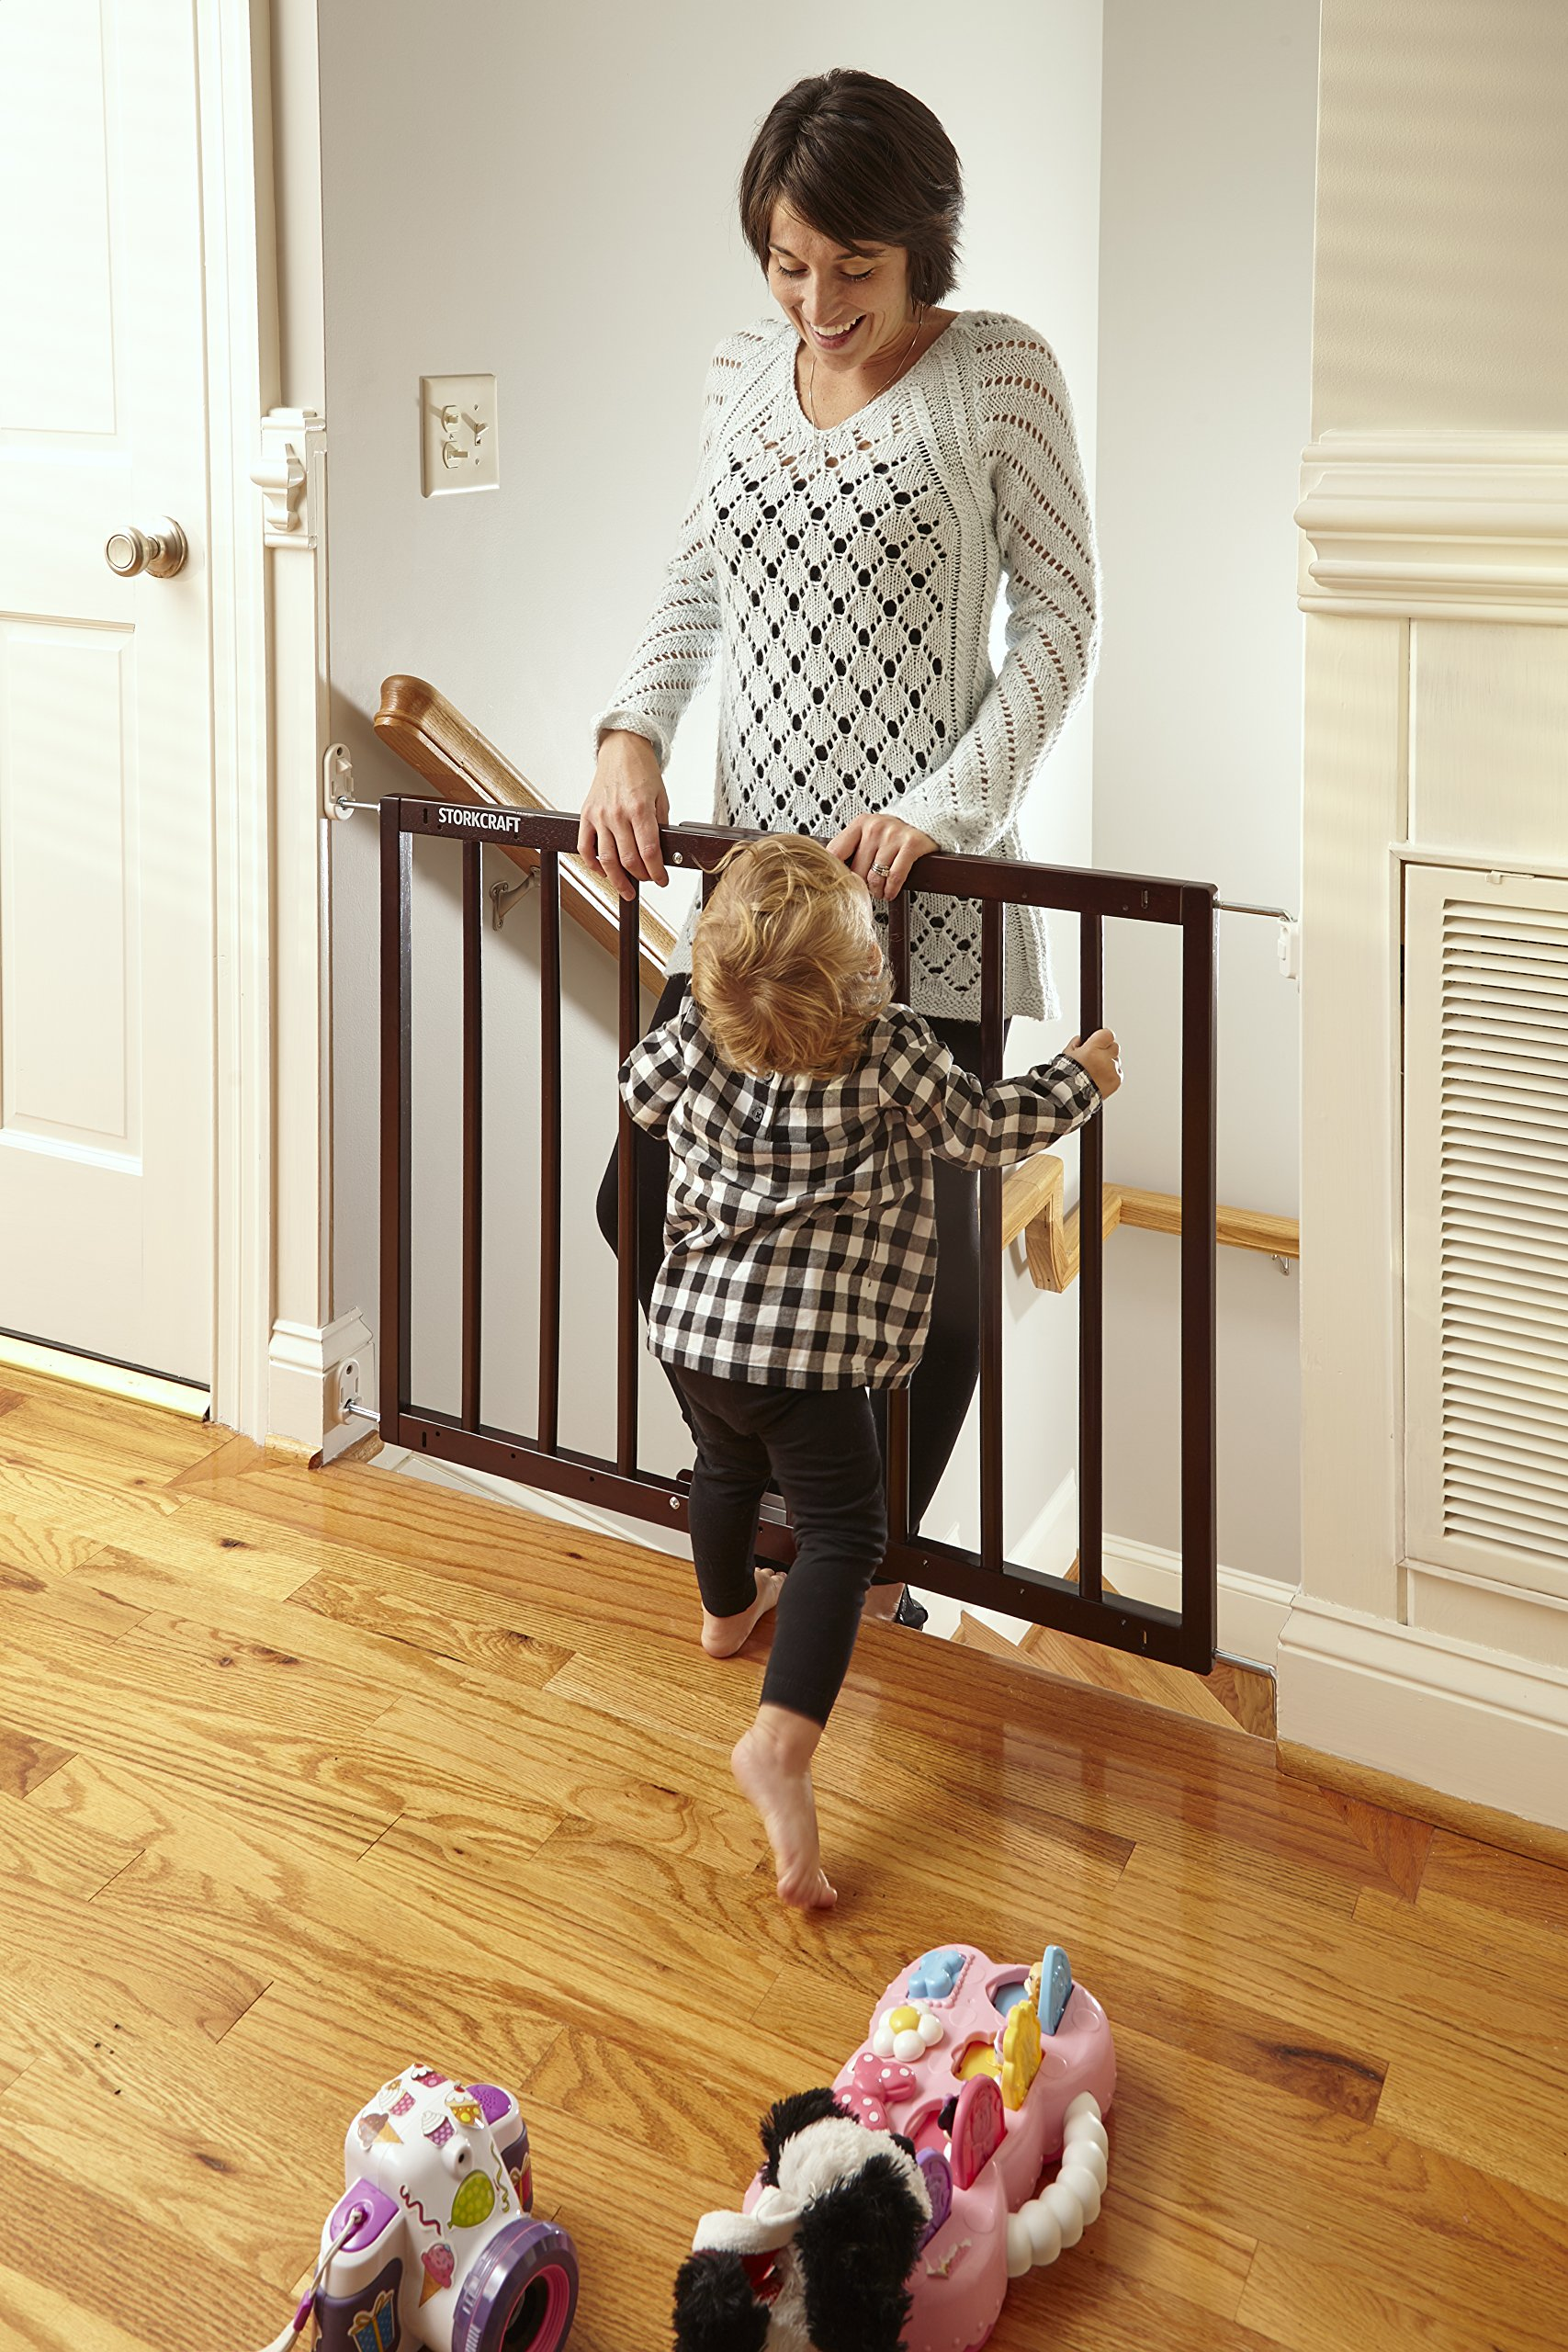 Storkcraft Easy Walk-Thru Wooden Safety Gate, Espresso Adjustable Baby Safety Gate For Doorways and Stairs, Great for Children and Pets by Stork Craft (Image #12)